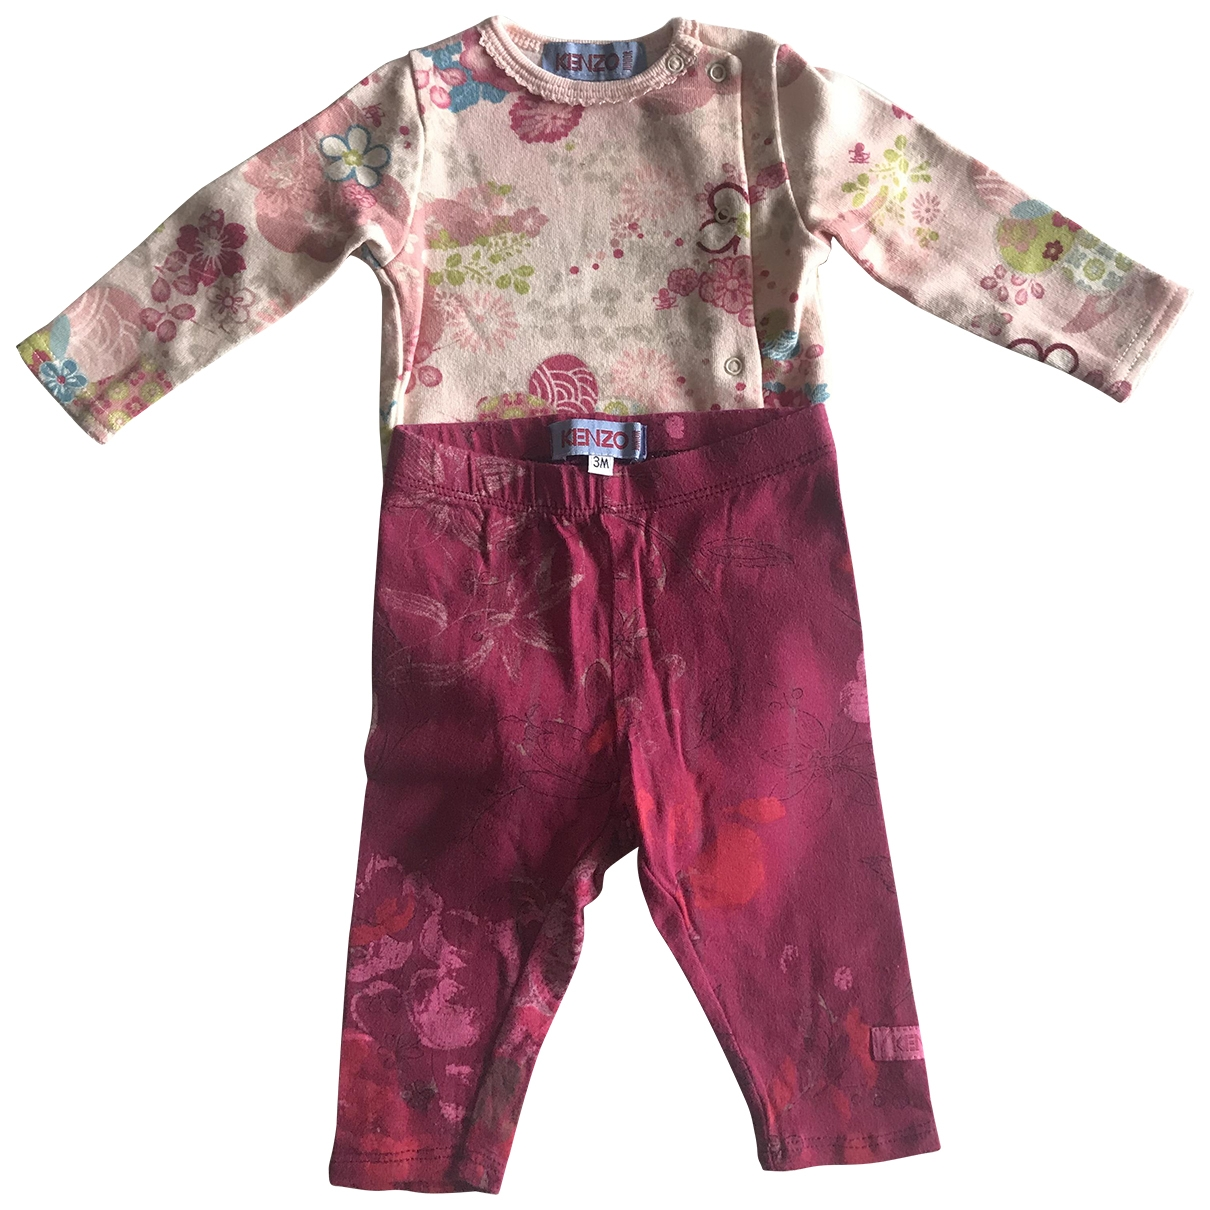 Kenzo \N Multicolour Cotton Outfits for Kids 3 months - up to 60cm FR